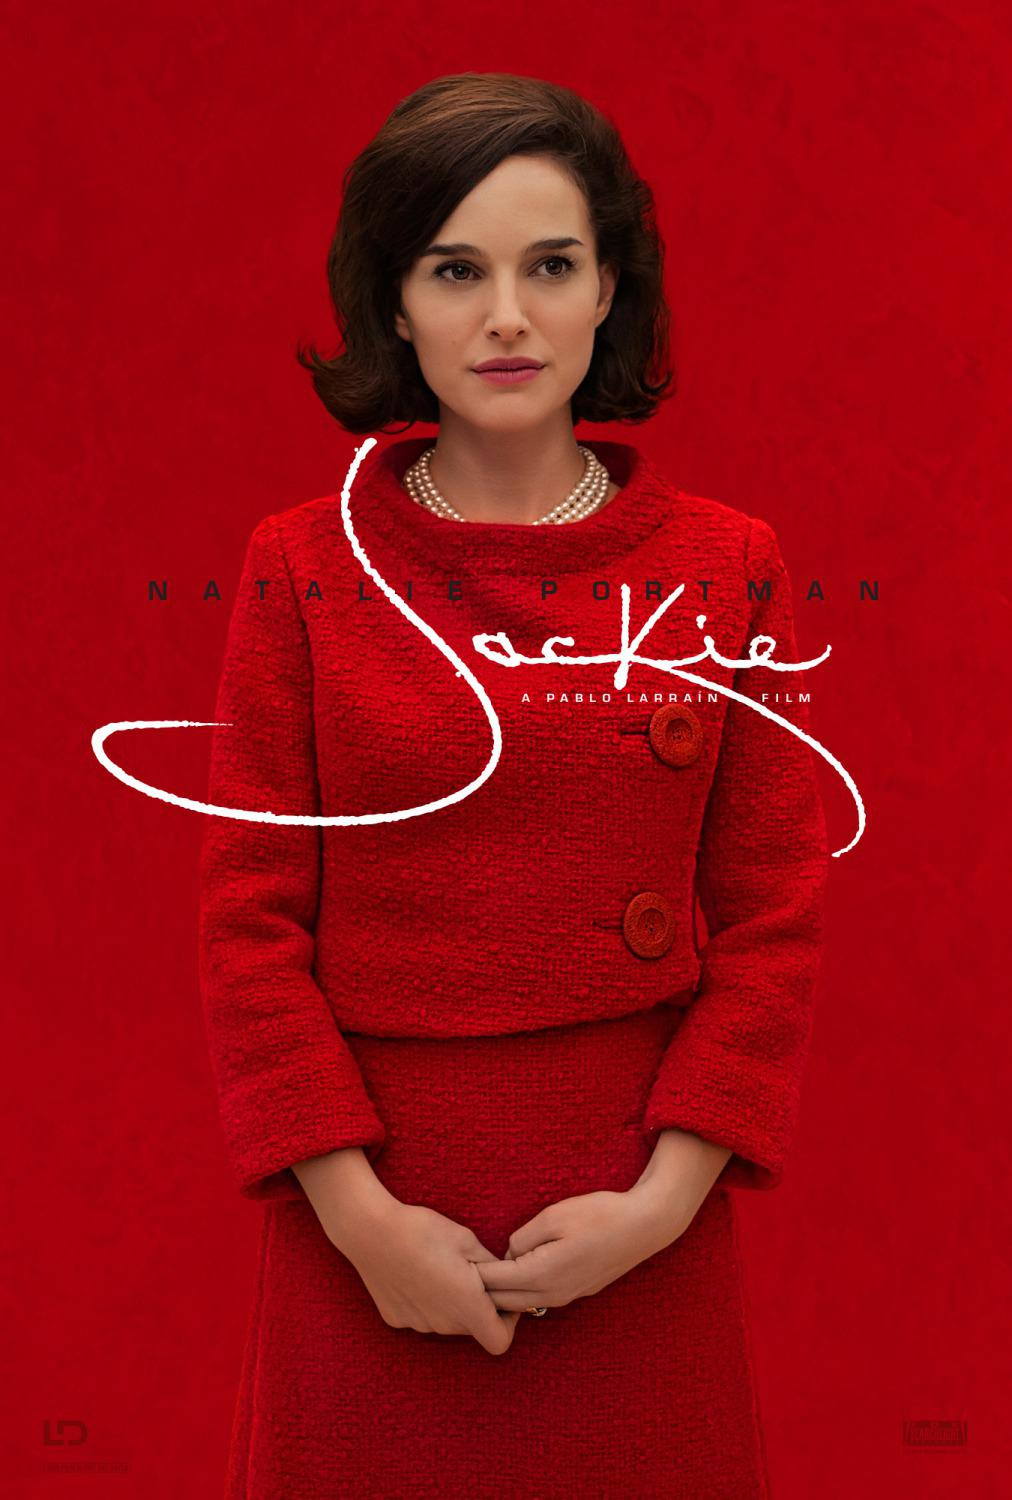 Film - Jackie (Natalie Portman) - first Lady - JFK - poster  - red dress